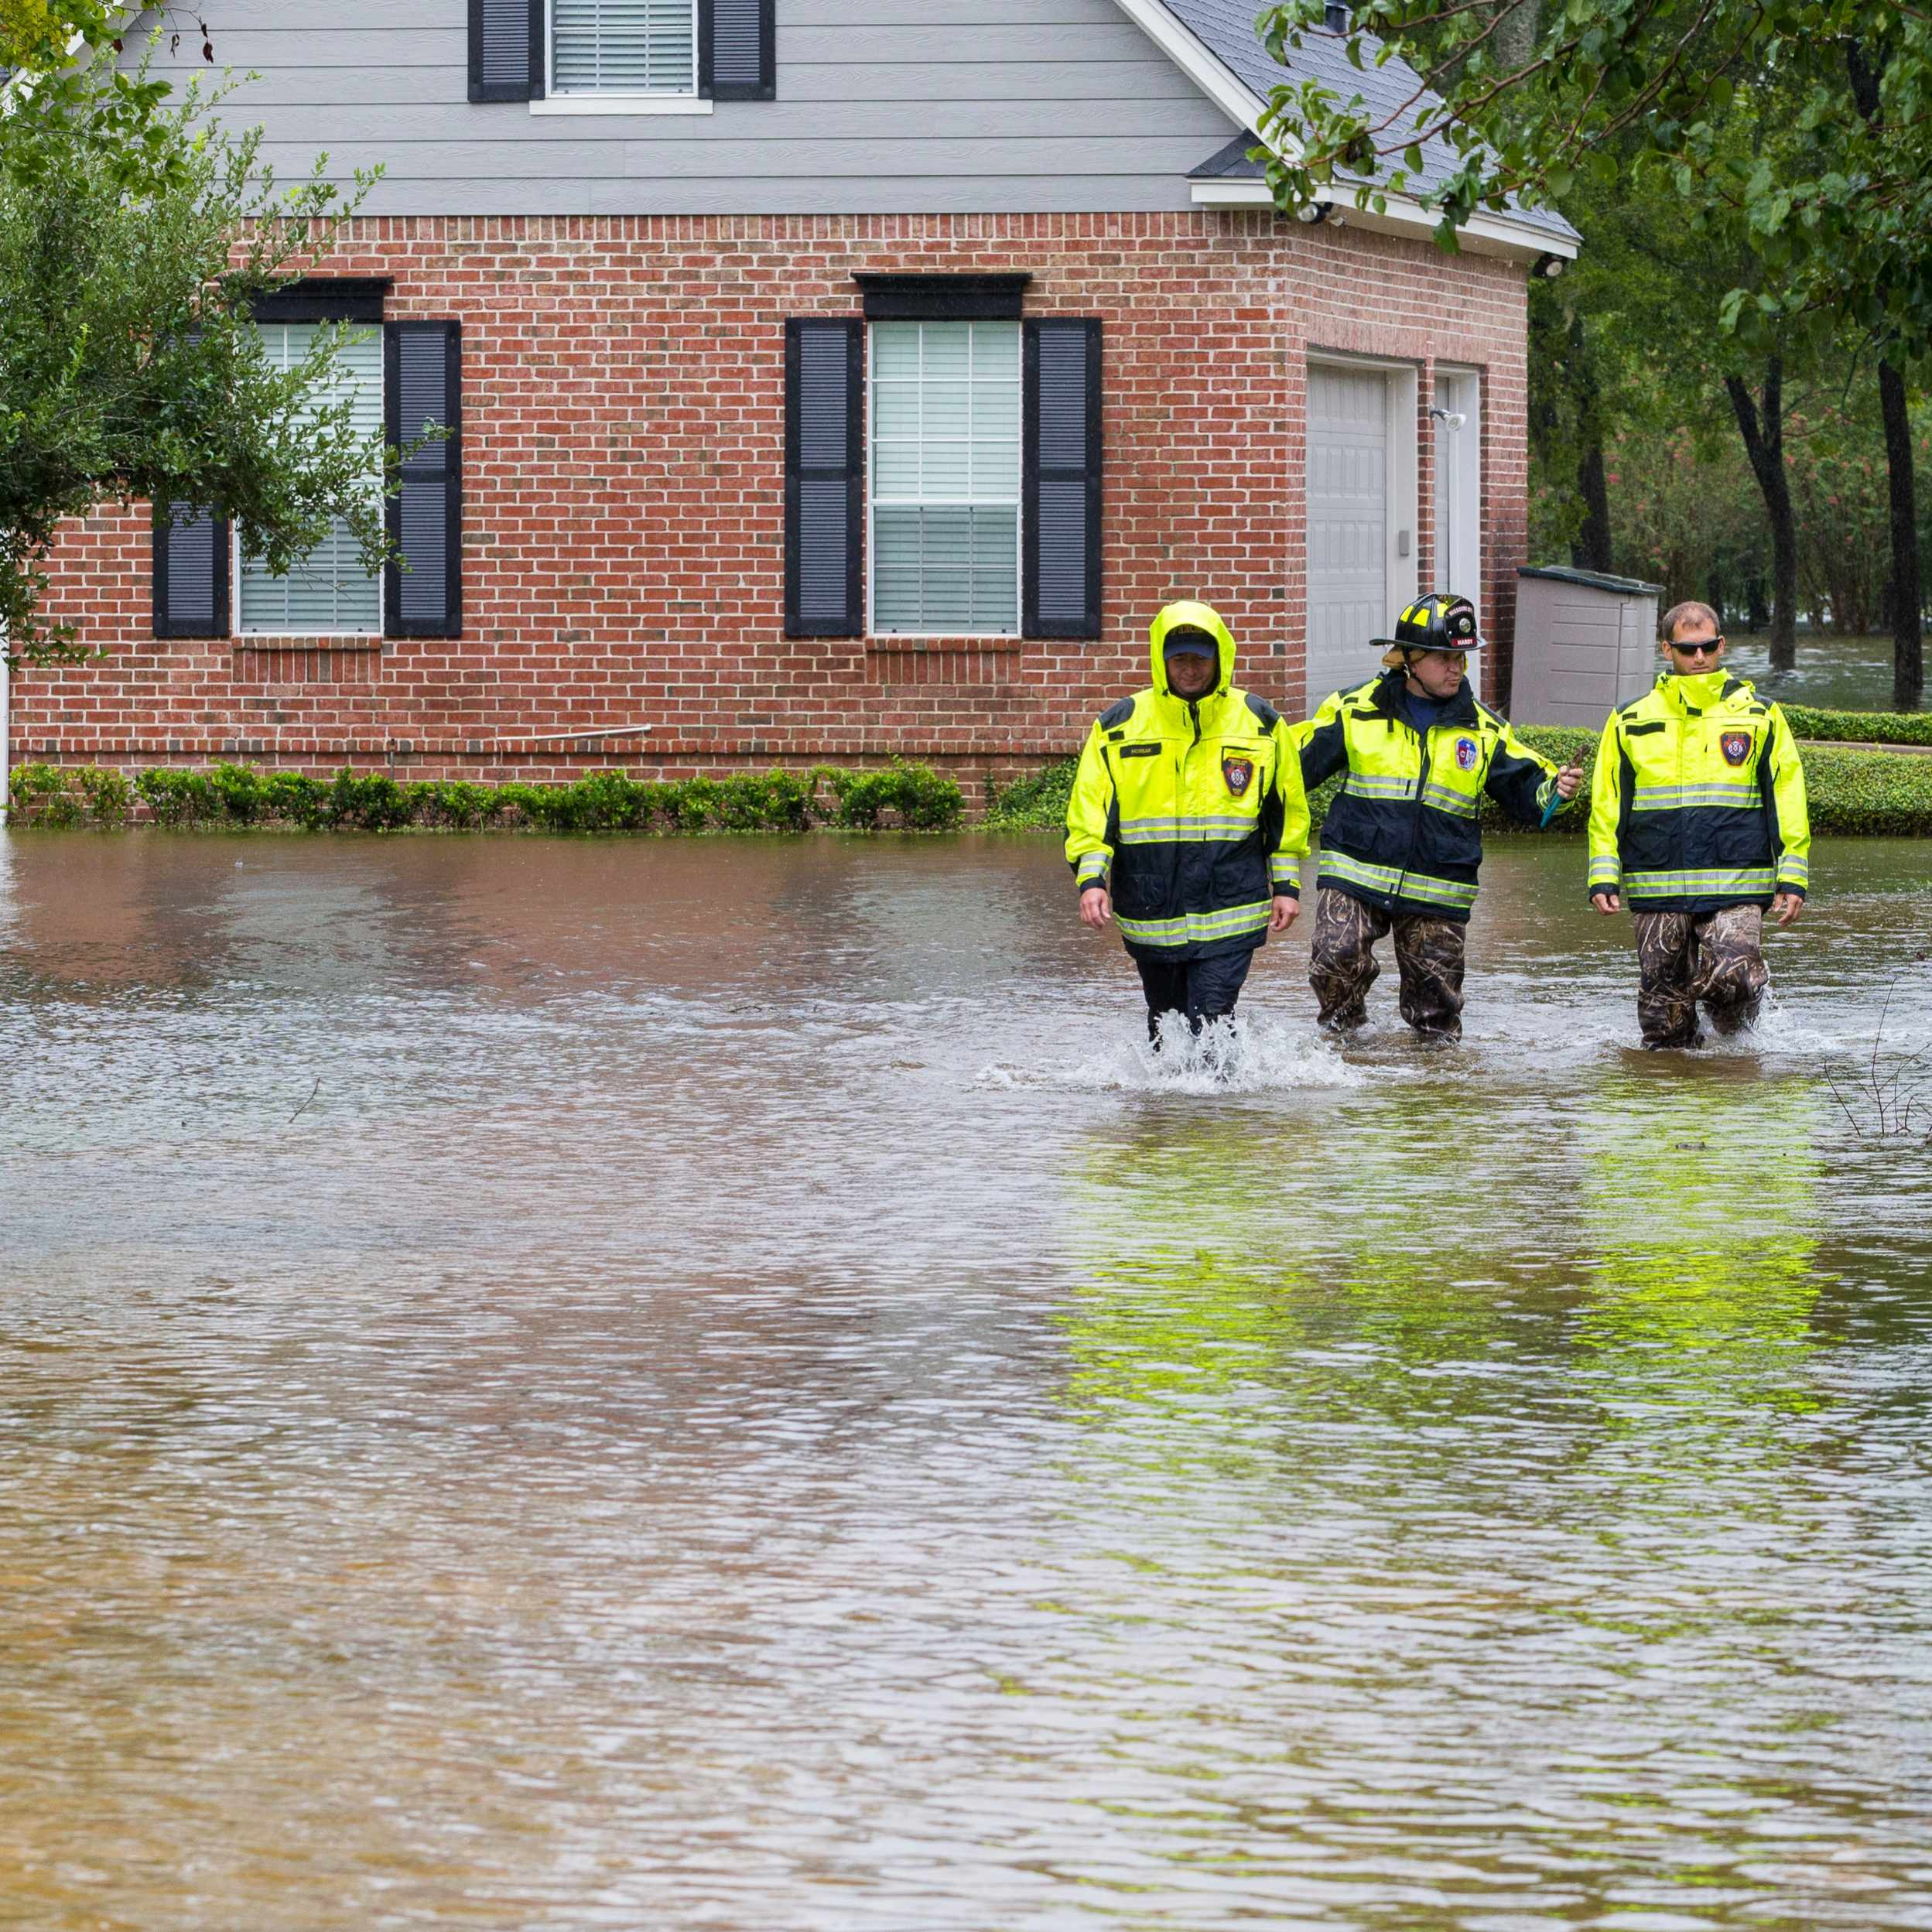 emergency workers walking through flood waters after the storm